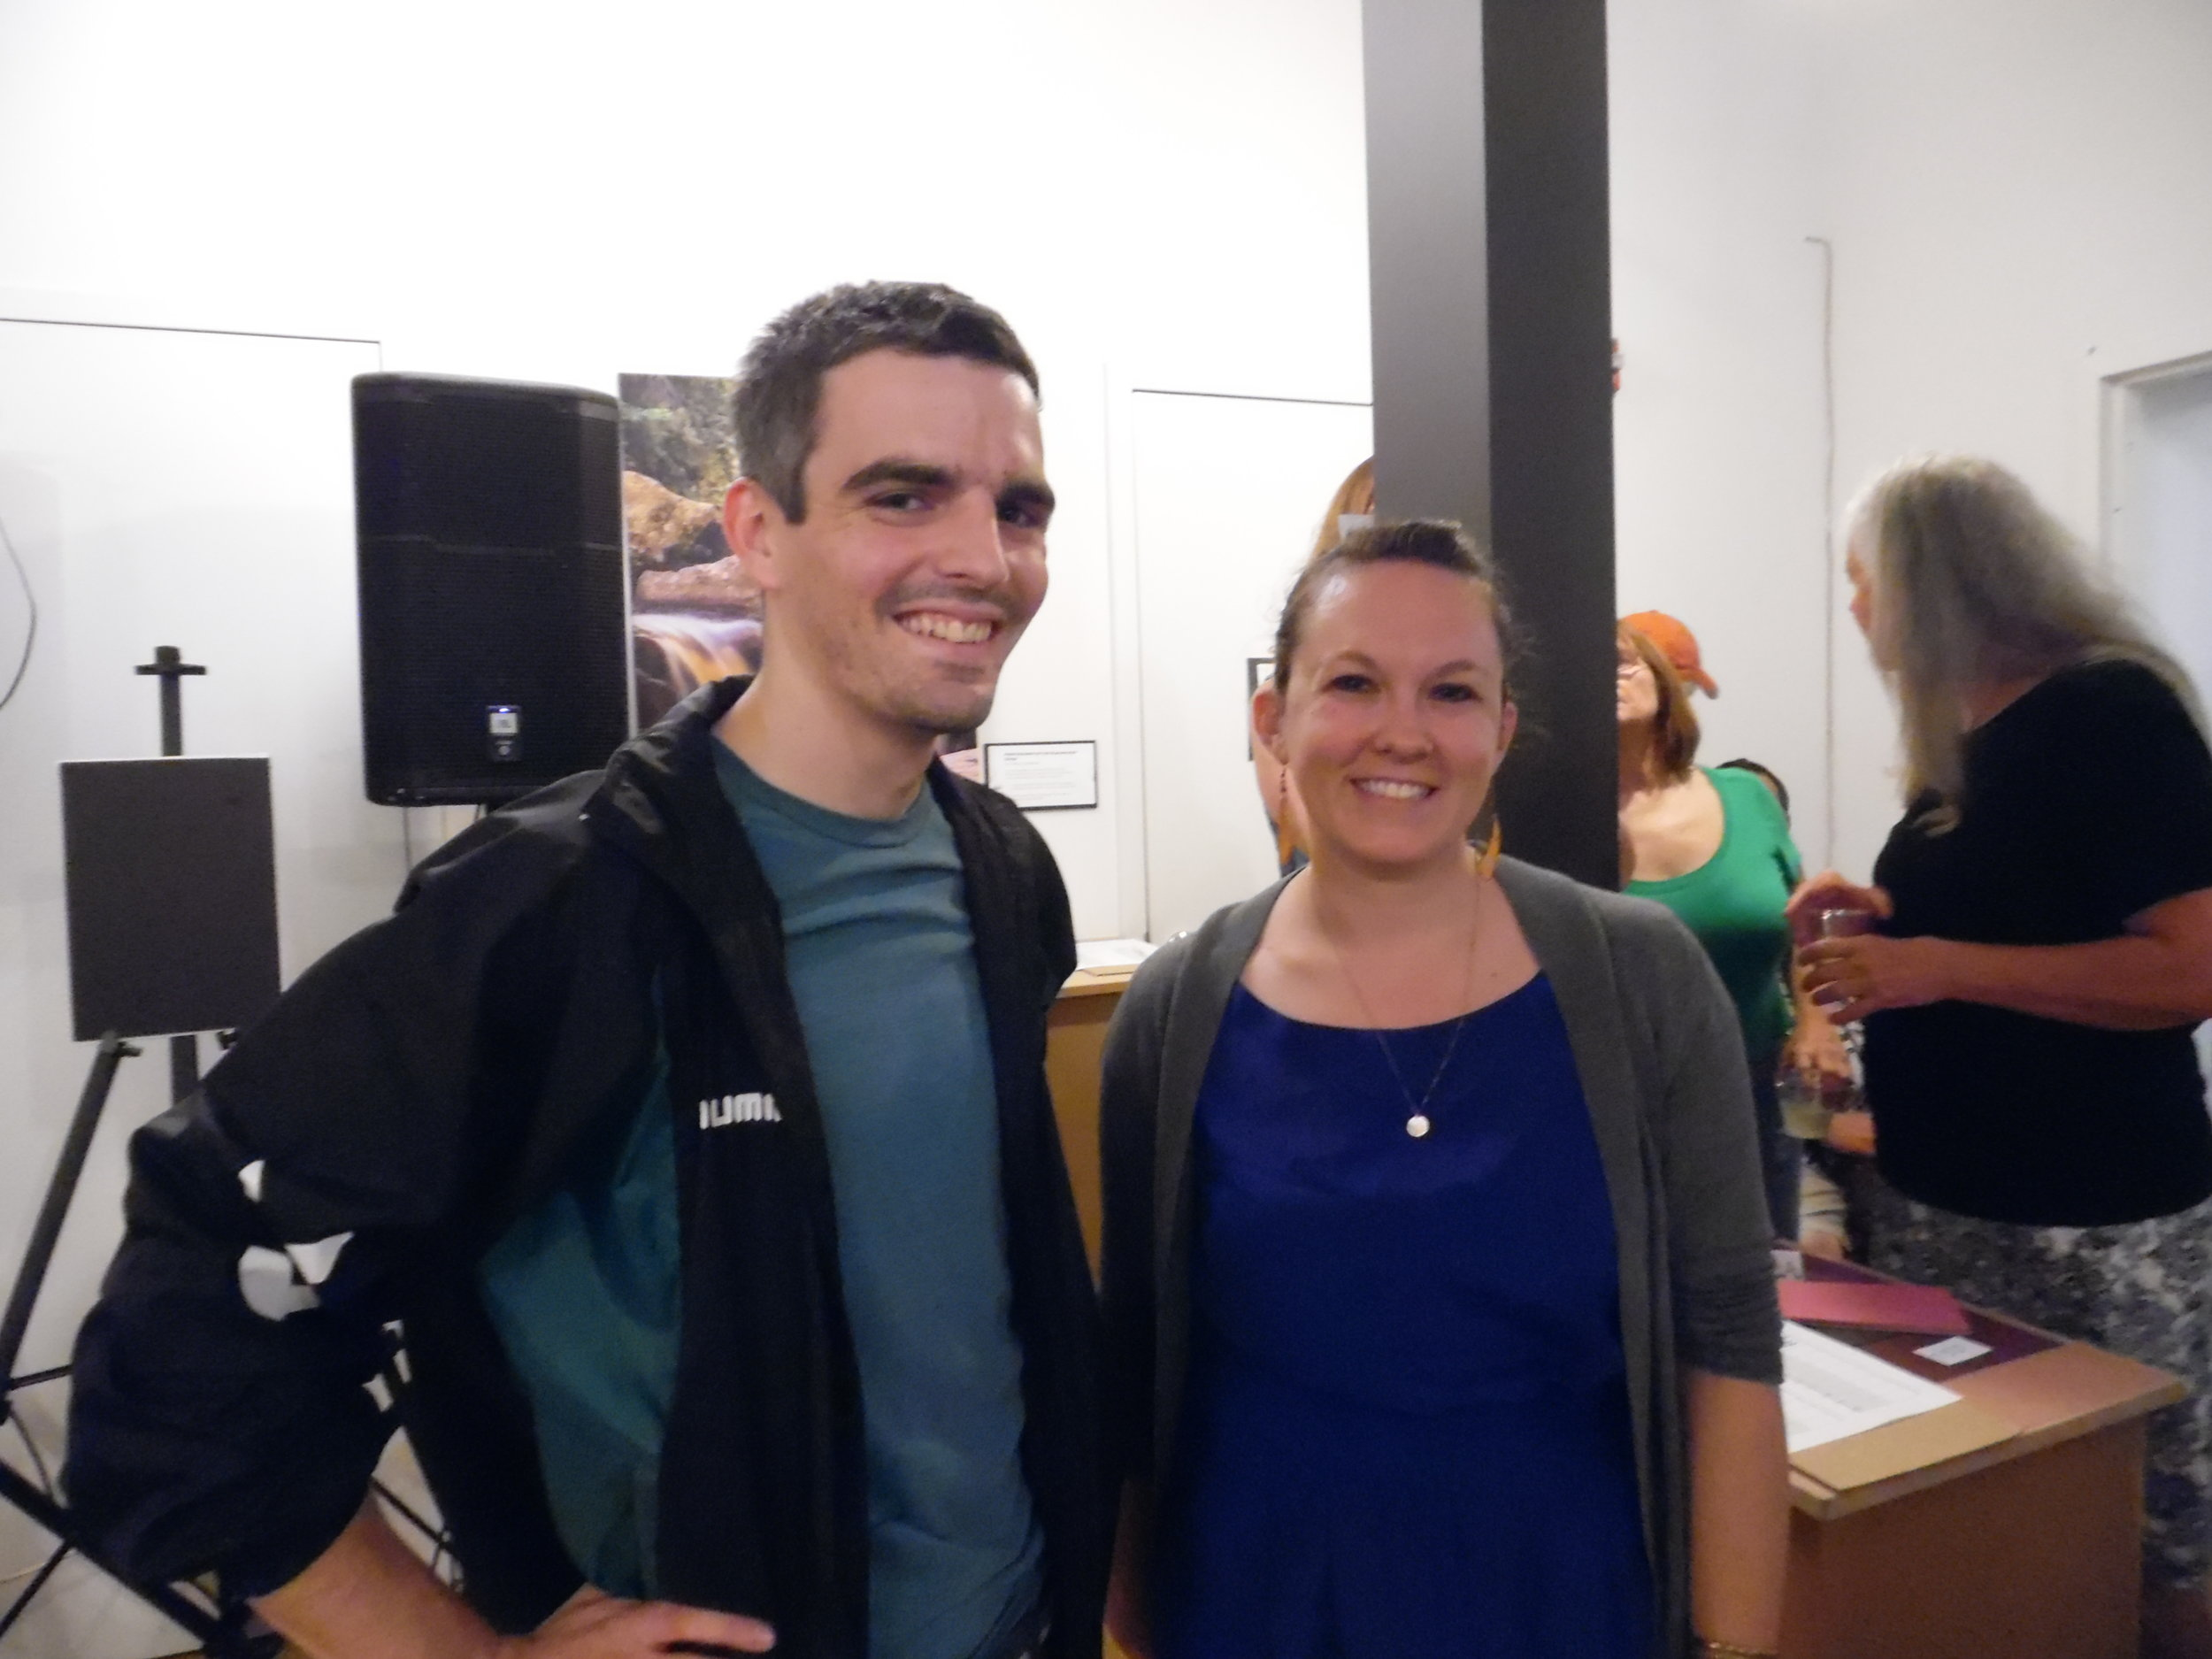 Pictured: Dominic Piacentini (AFHA AmeriCorps) and Emily Wilson-Hauger (New Historic Thomas)